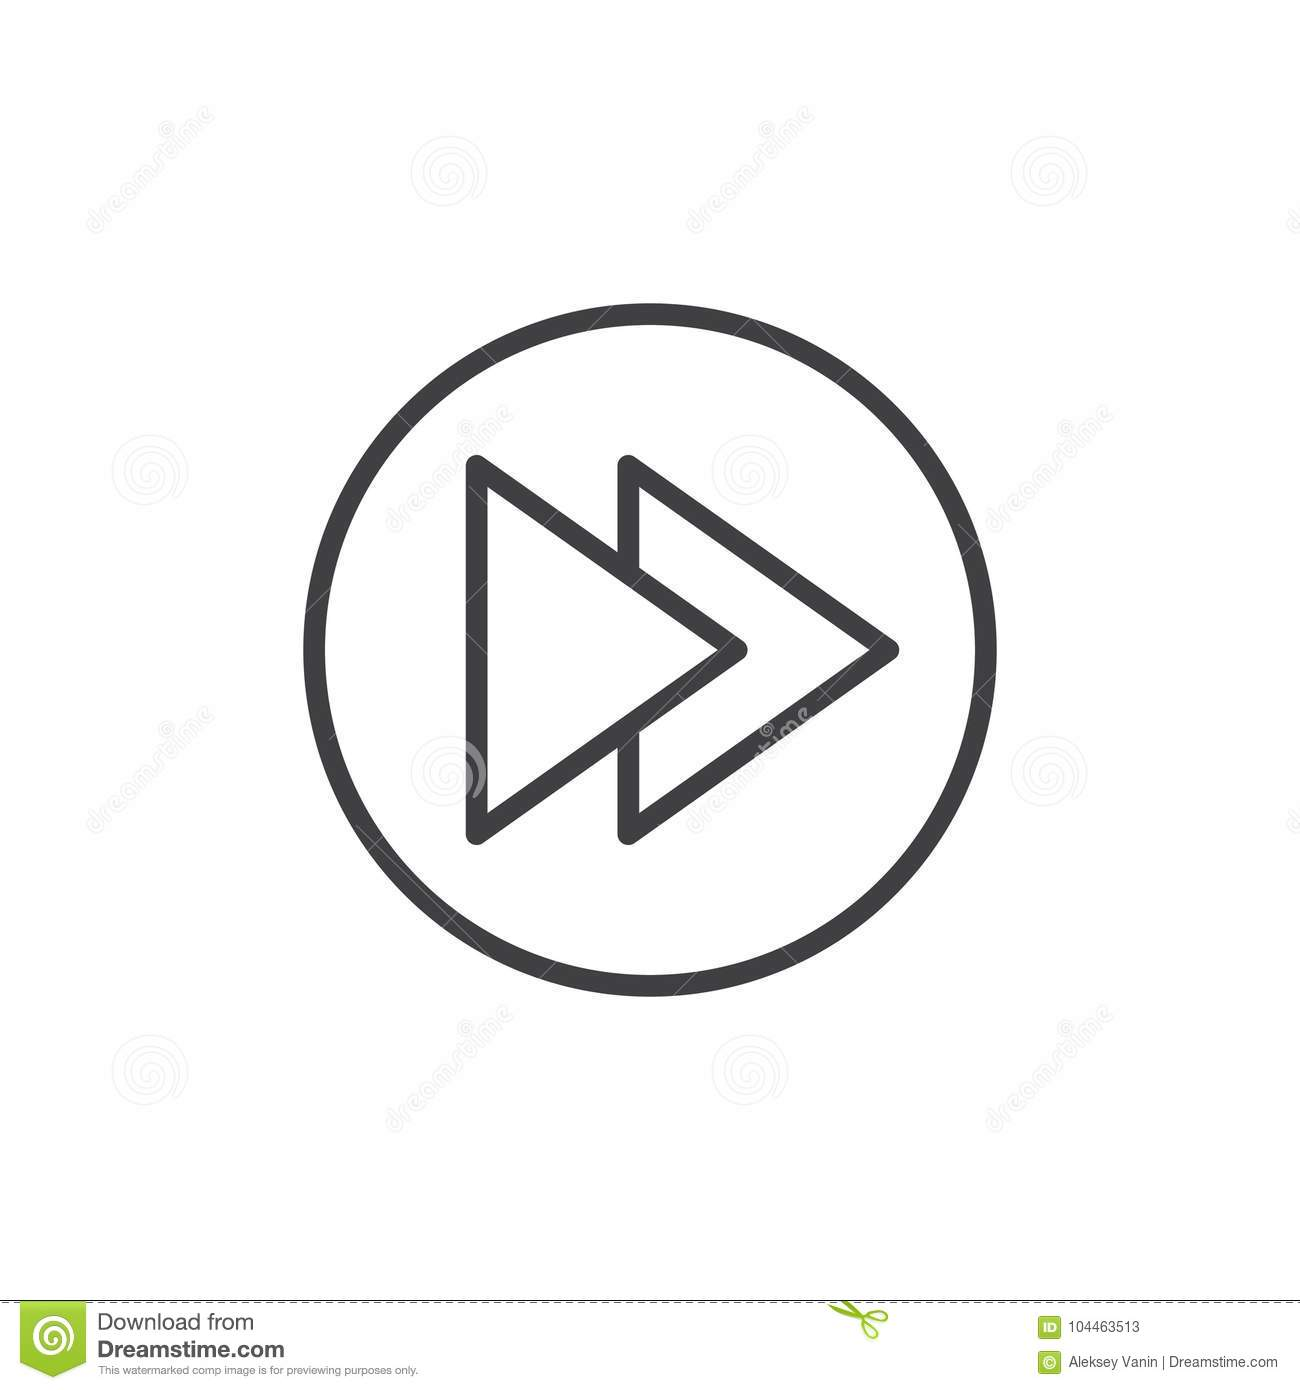 Right Double Arrow Line Icon Stock Vector Illustration Of